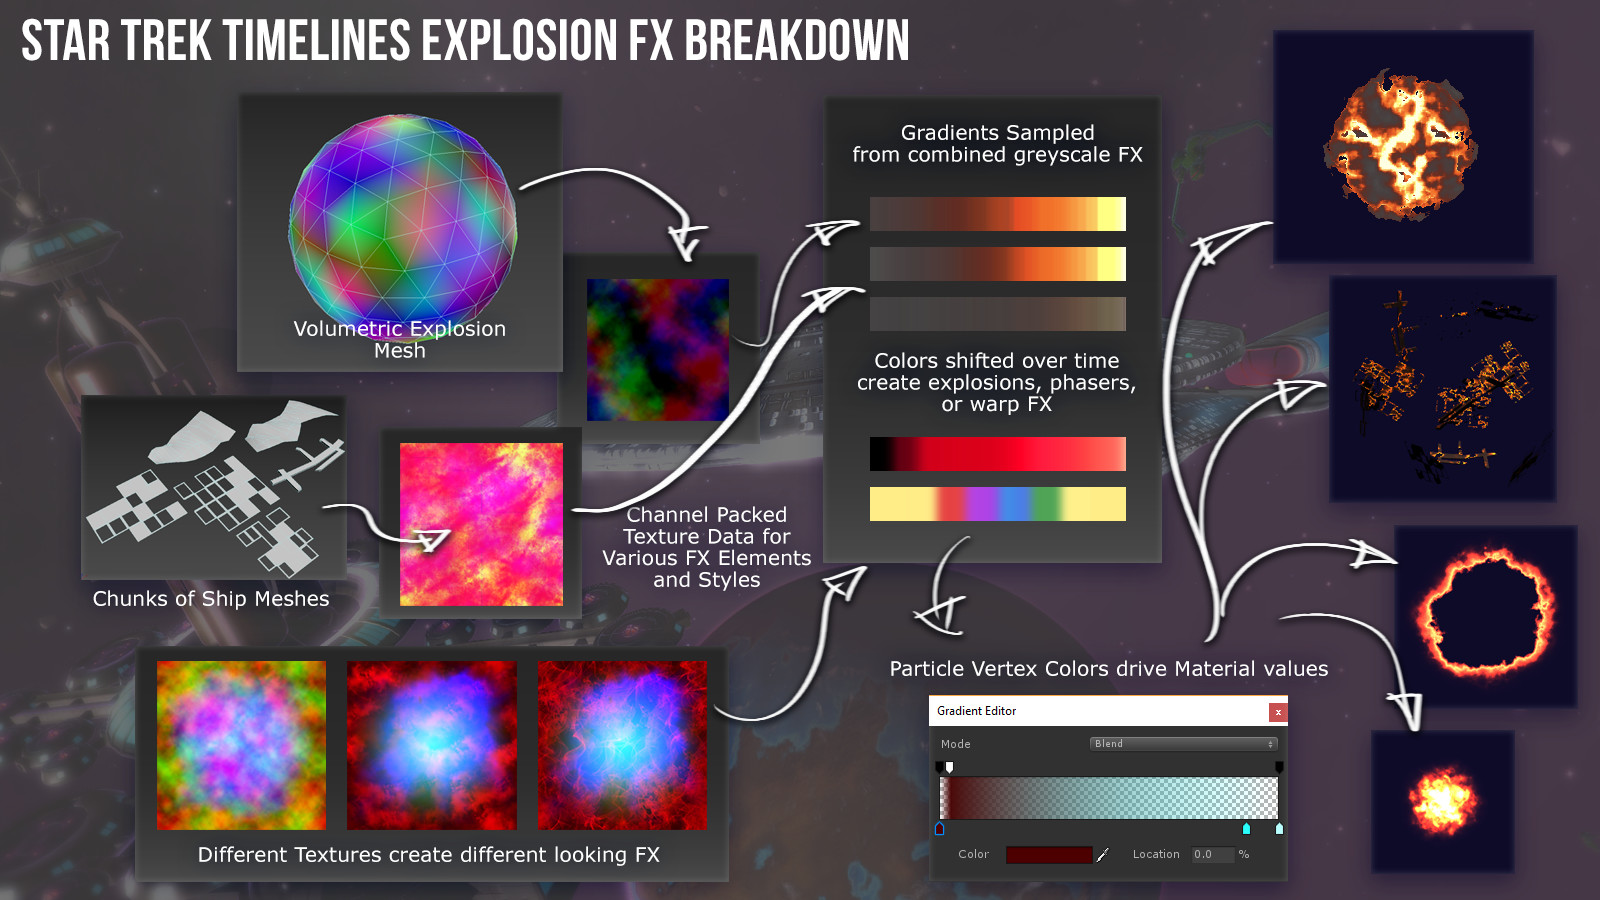 Some details about the Ship Battle FX.  Almost every effect uses one of those three base textures, even the shockwaves and temporal anomalys.  High end added distortion as well.